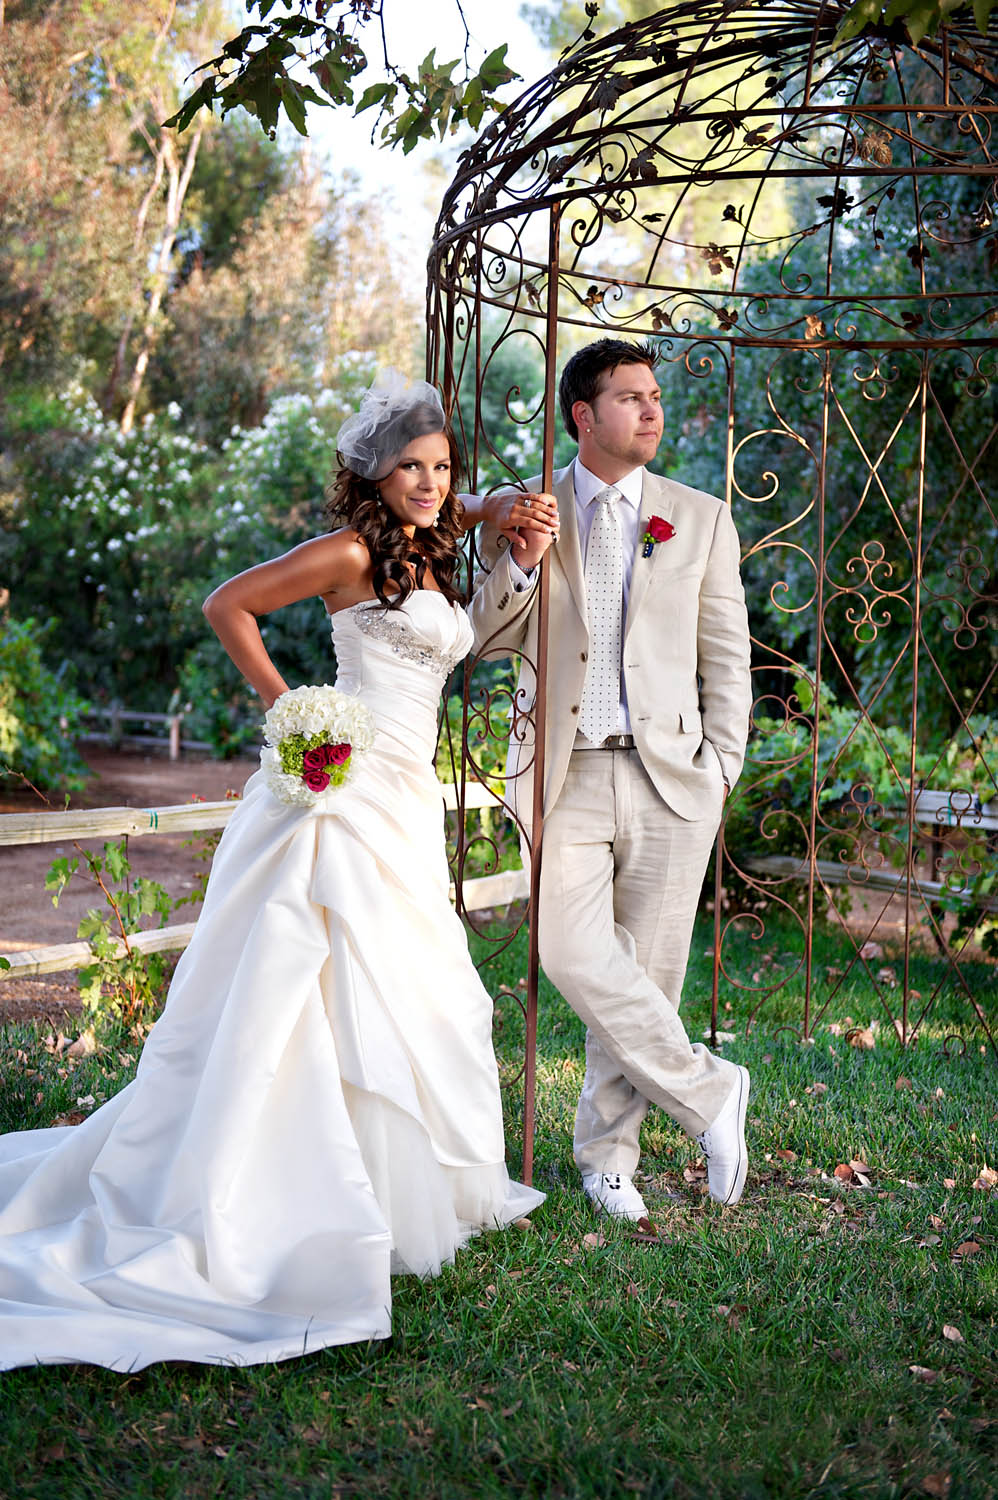 bride-and-groom-portraits-lake-oak-meadows-ian-andrew-photography-006.jpg